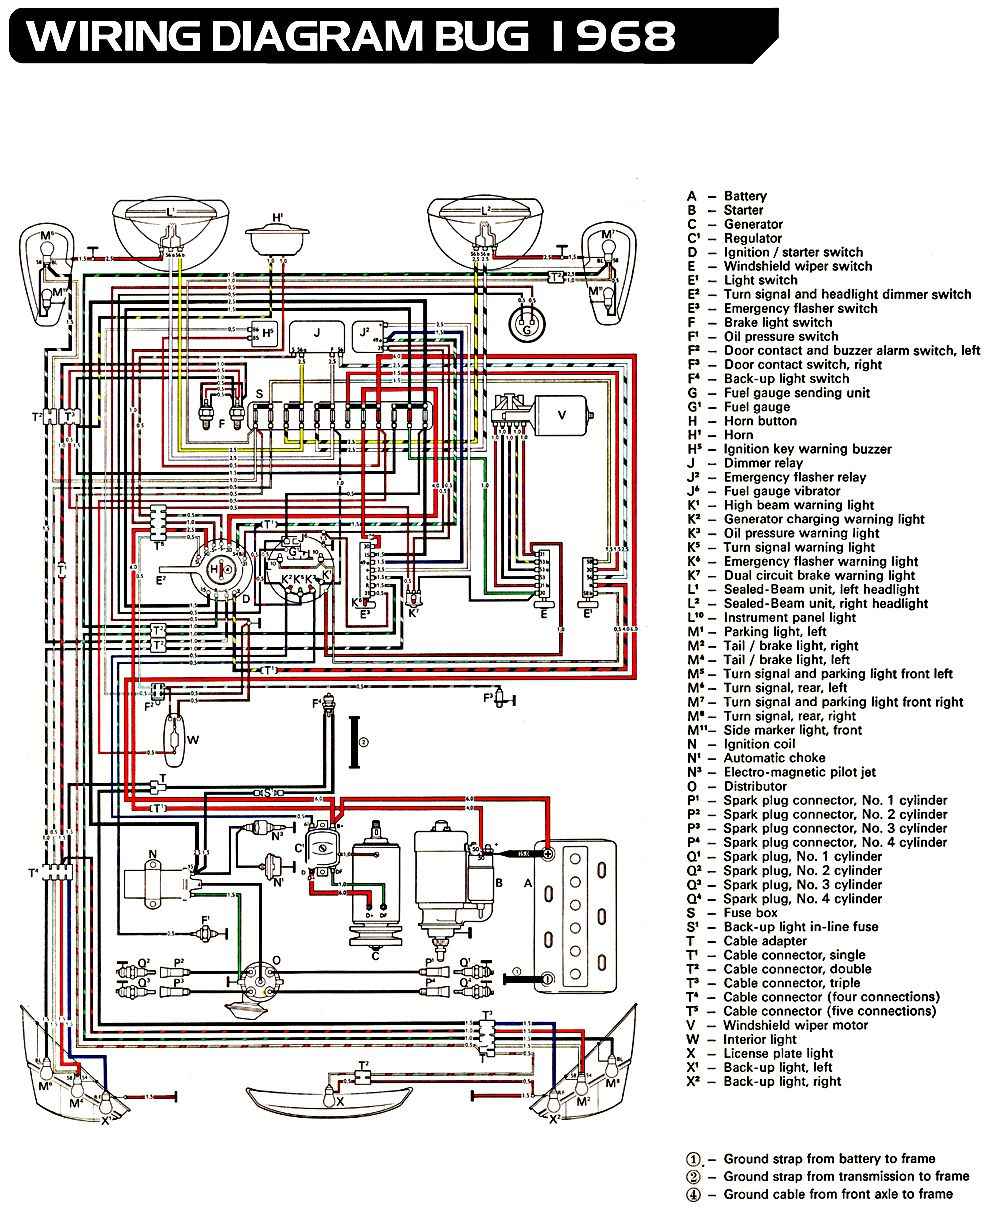 1970 beetle wiring diagram audi tt window motor 1962 69 volkswagen data schemawiring 68 vw bug name